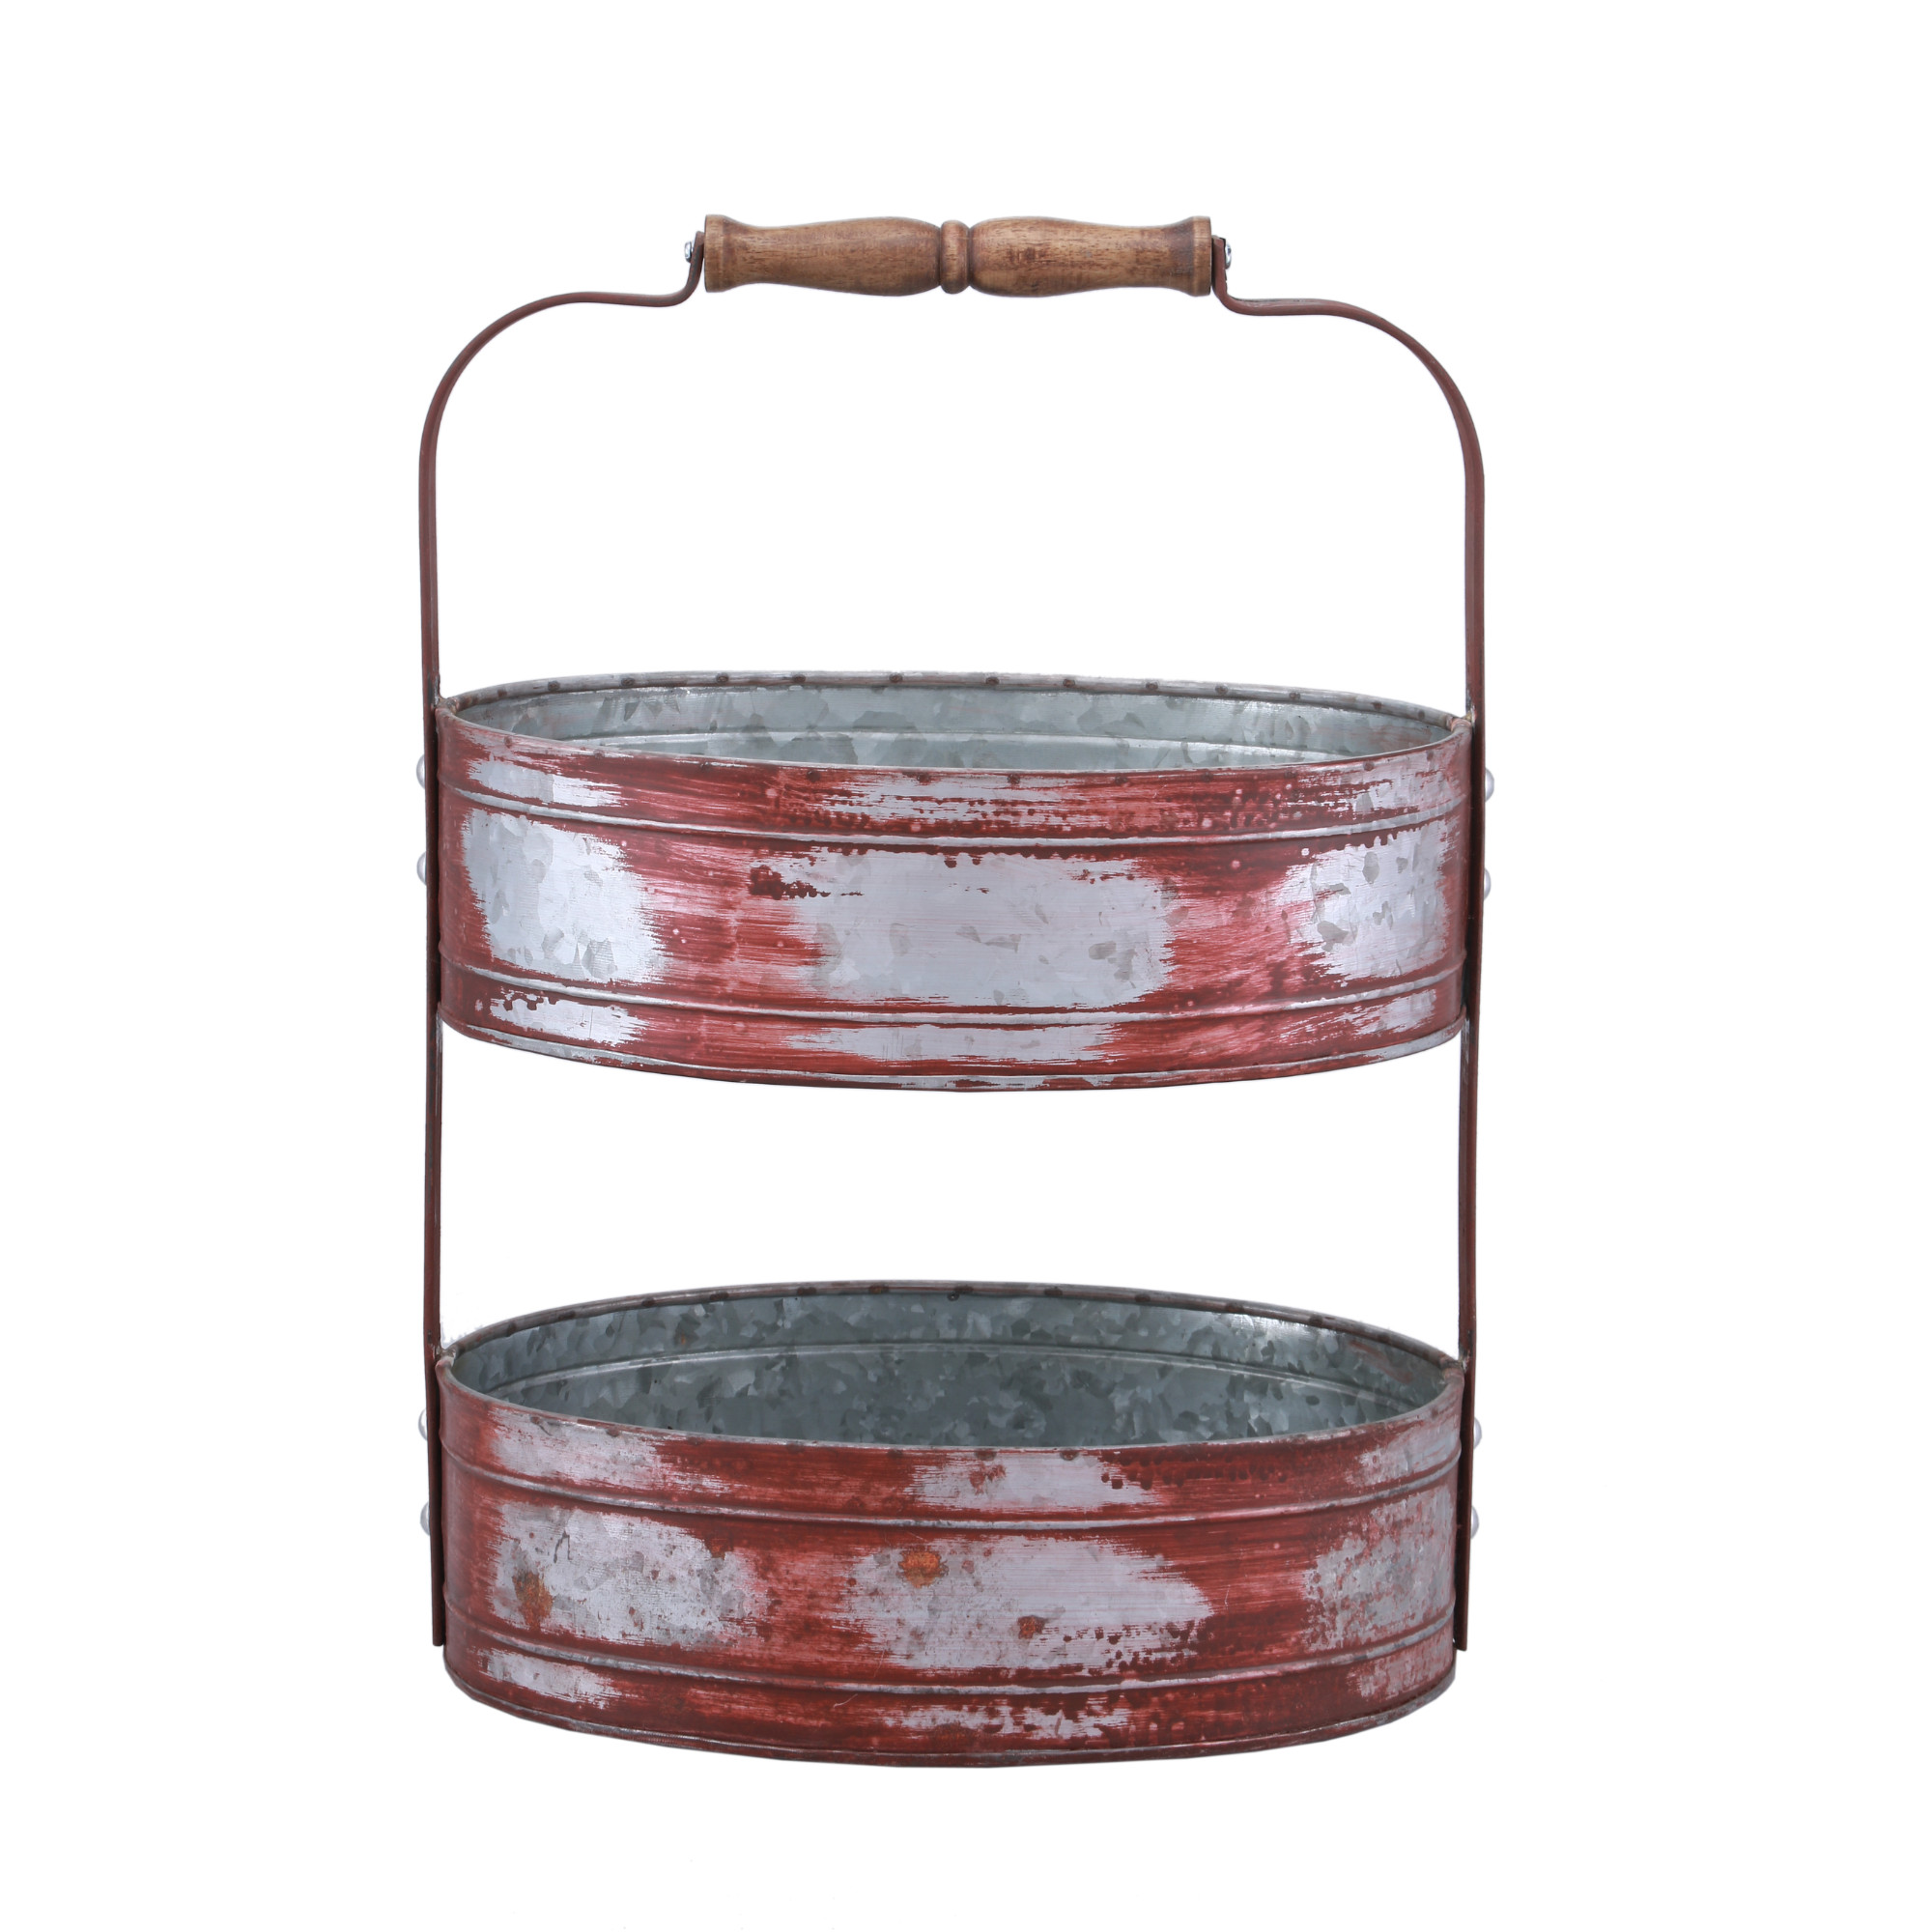 Country Style Two Tiered Galvanized Iron Tray, Red and Gray